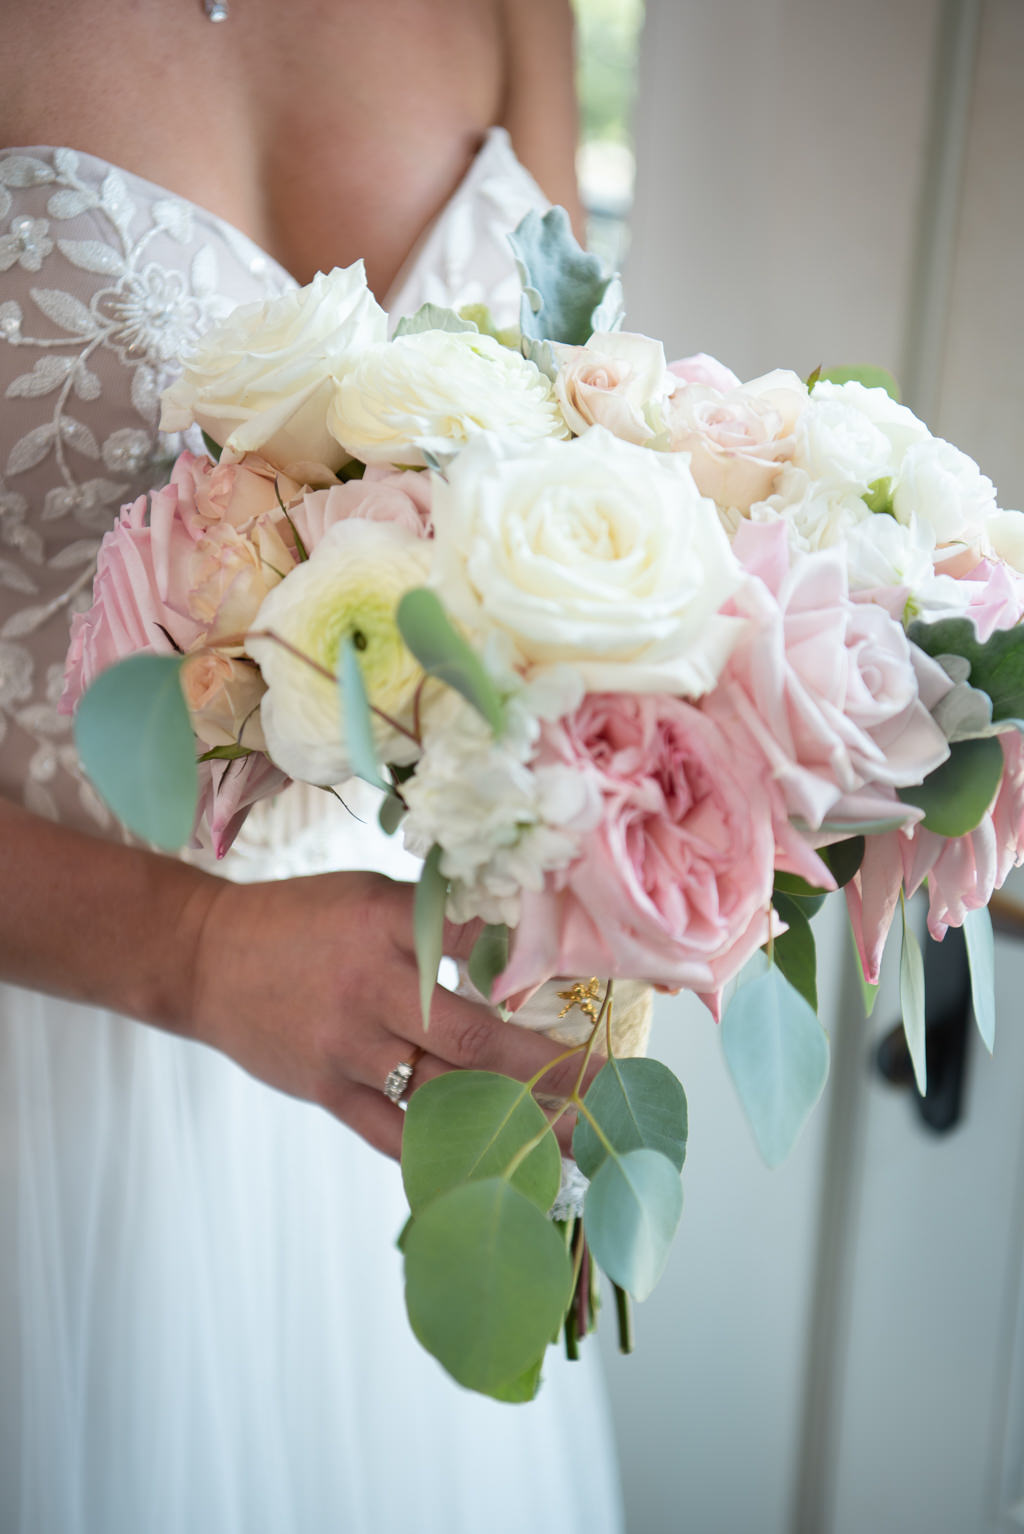 Classic Summer Bridal Bouquet Blush Pink Roses, Ivory Florals, White Flowers and Greenery   Tampa Bay Wedding Planner Coastal Coordinating